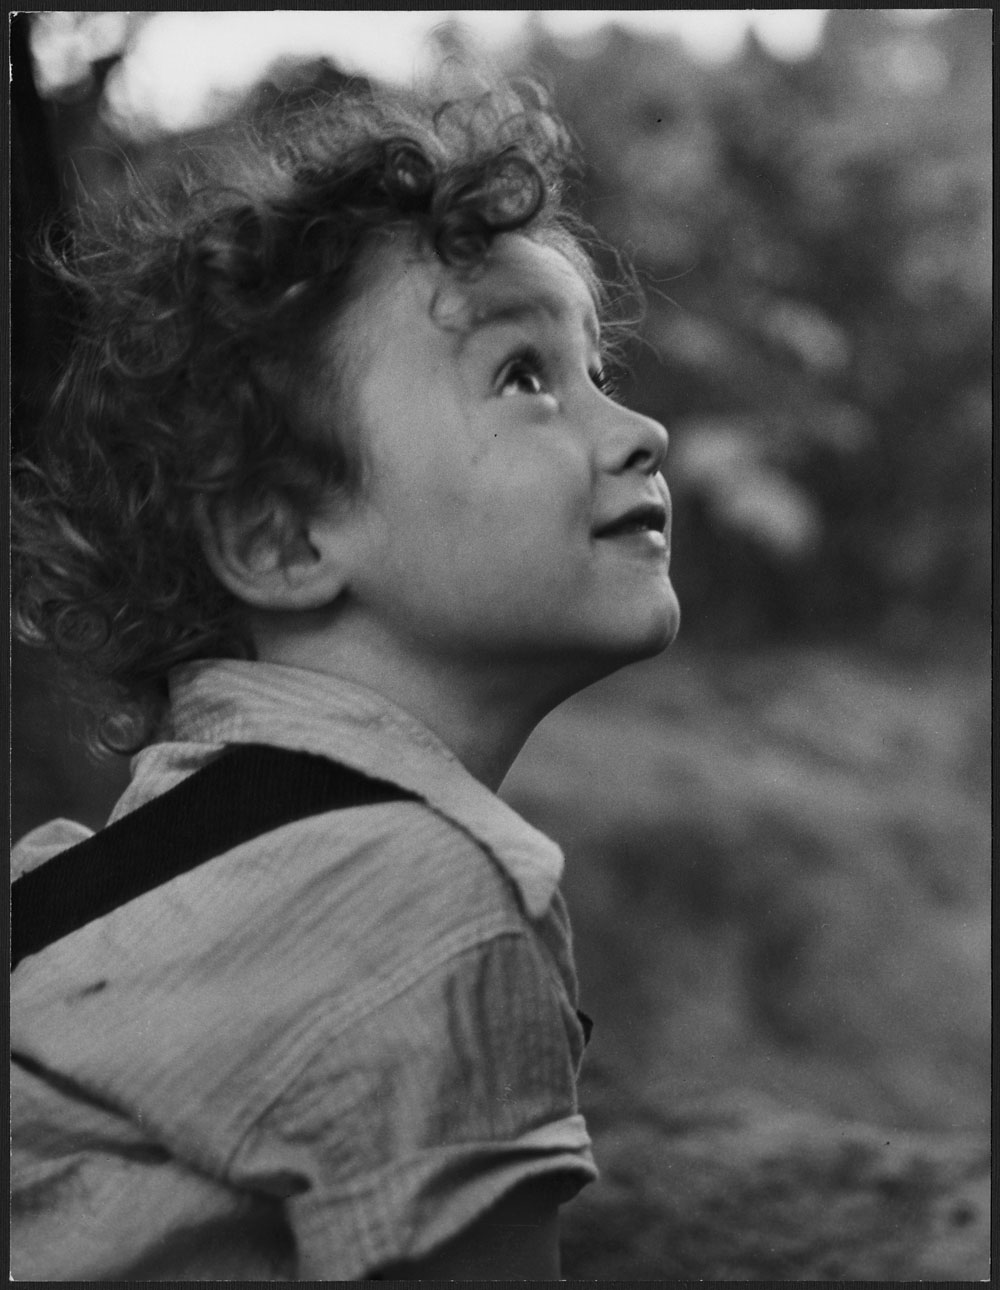 French Immigrant Boy, Toronto, 1955